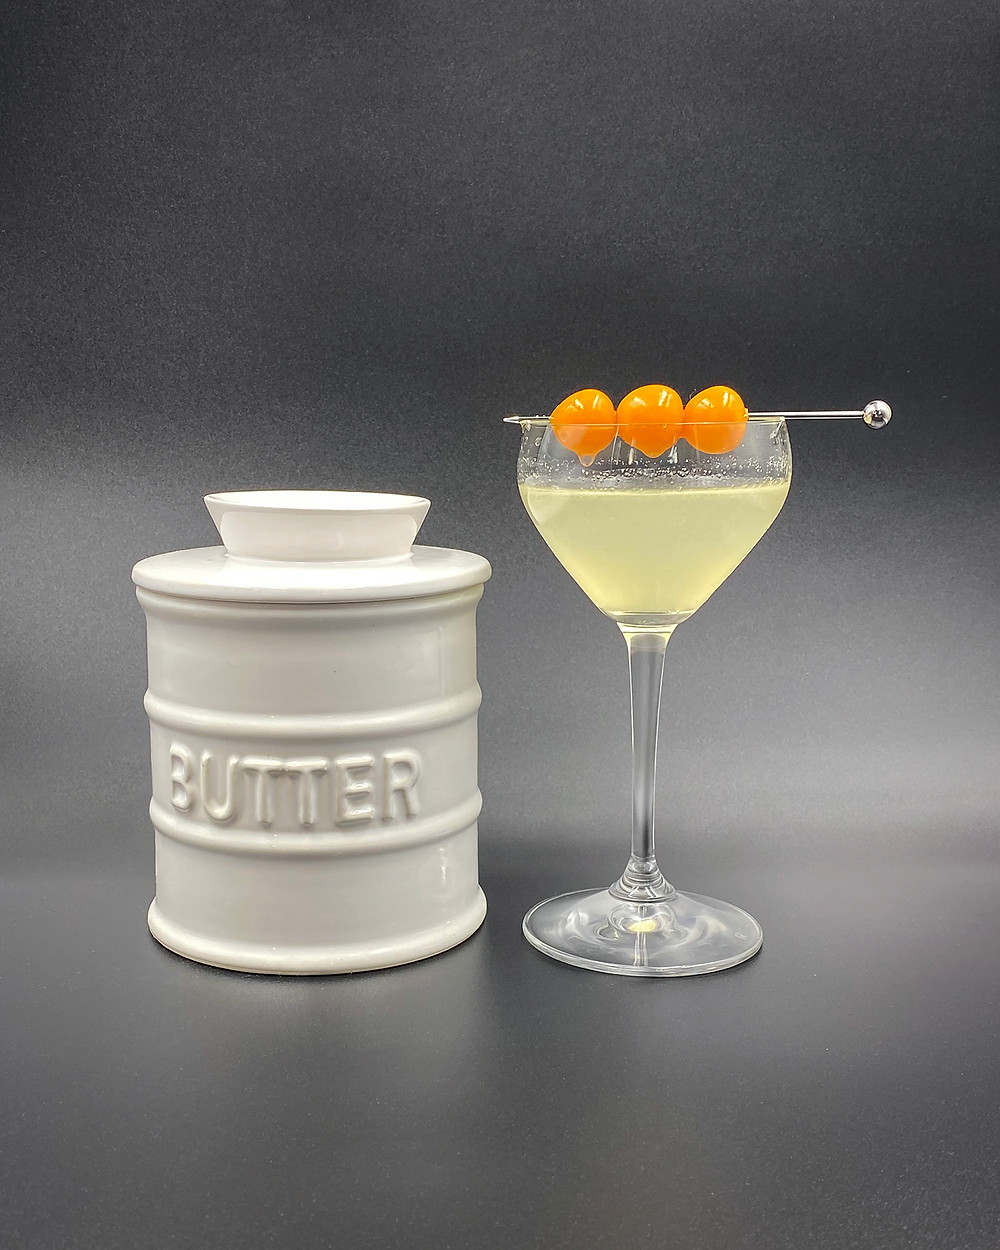 Gin Professors Butter Martini